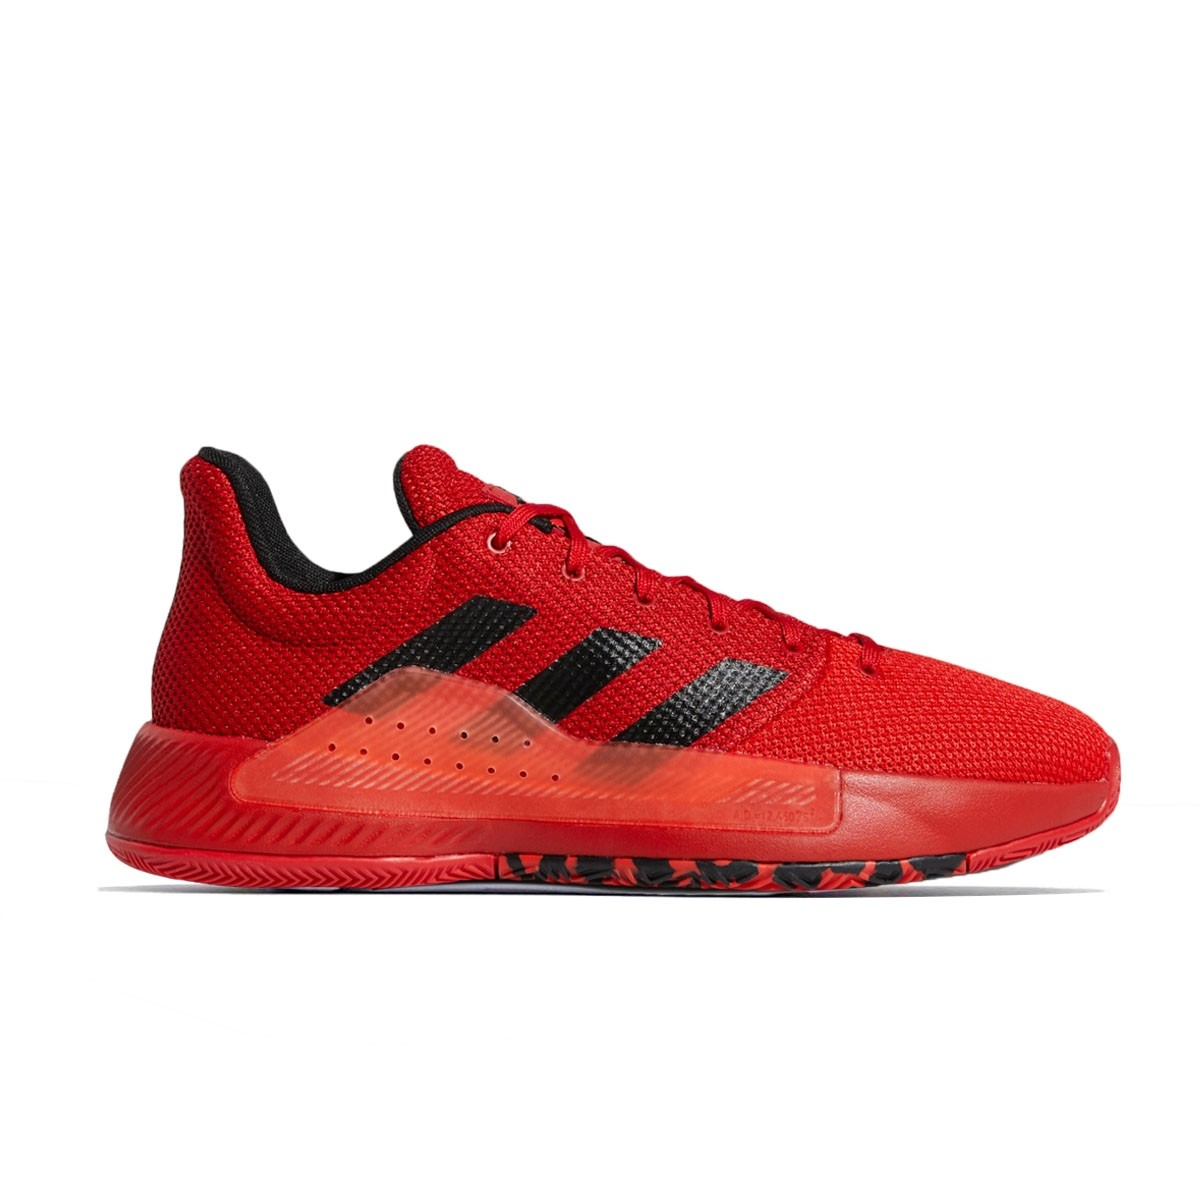 ADIDAS Pro Bounce Madness Low 'Louisville'